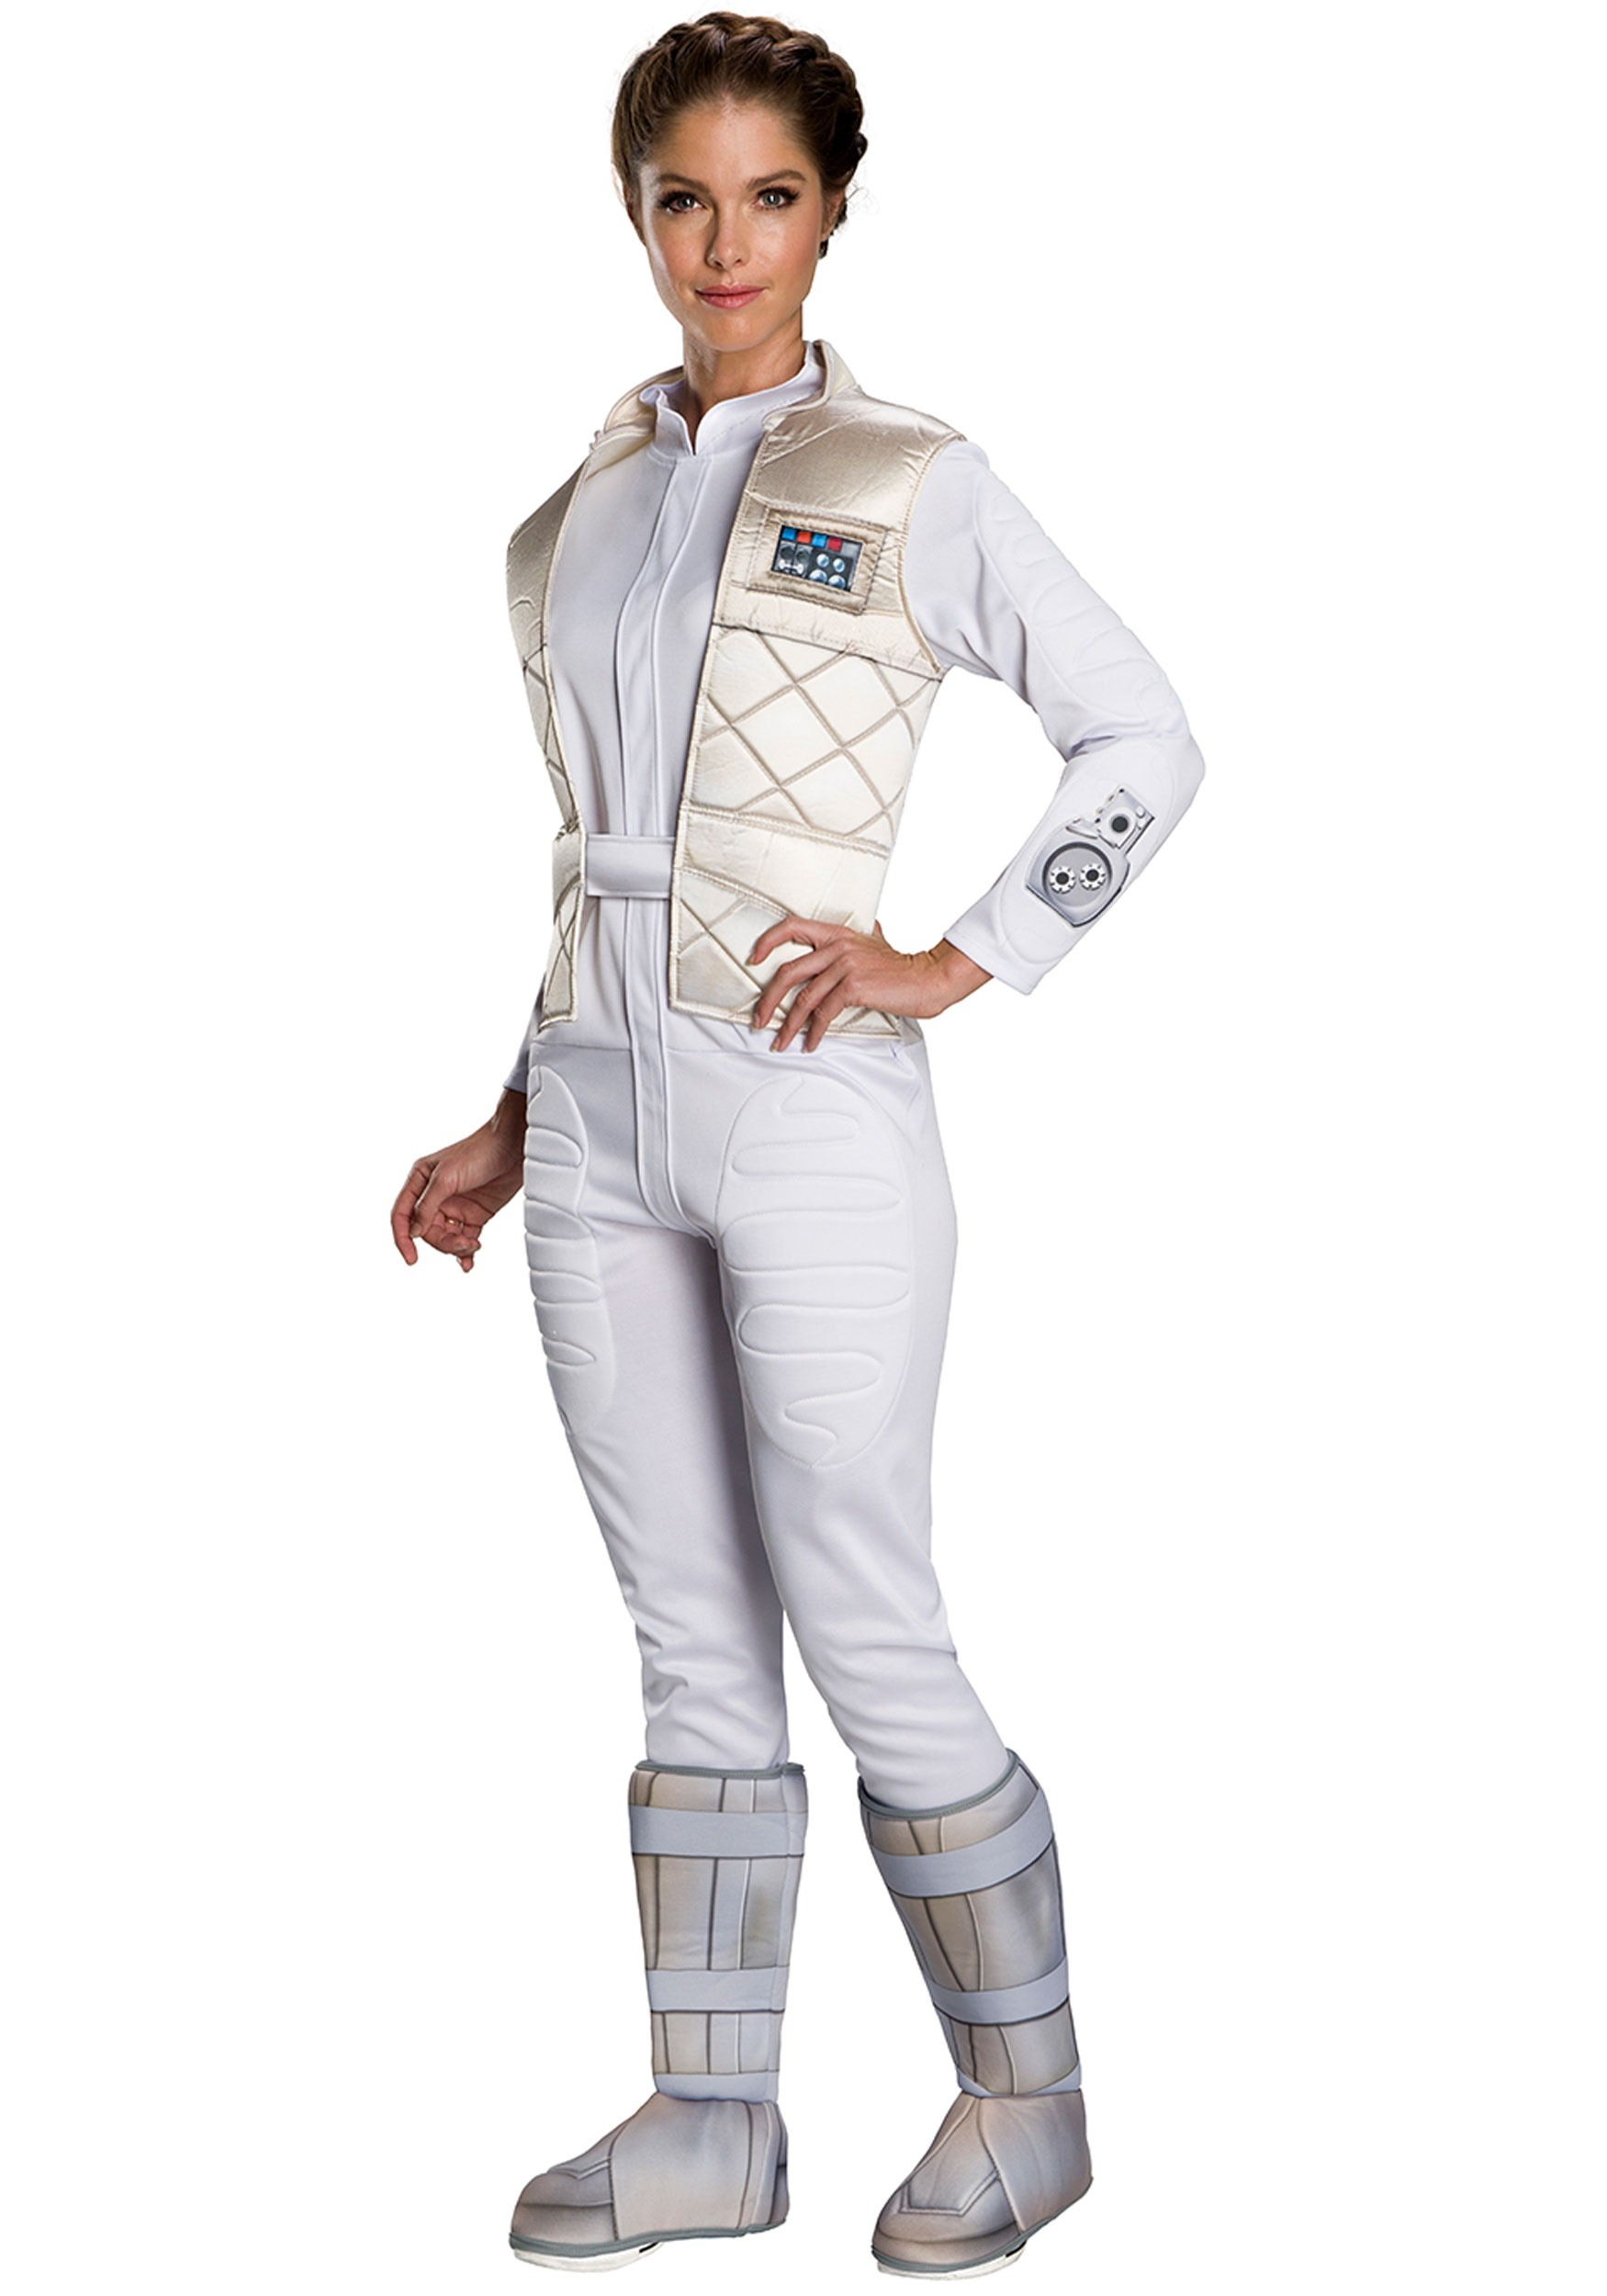 Hoth Leia Costume for Women